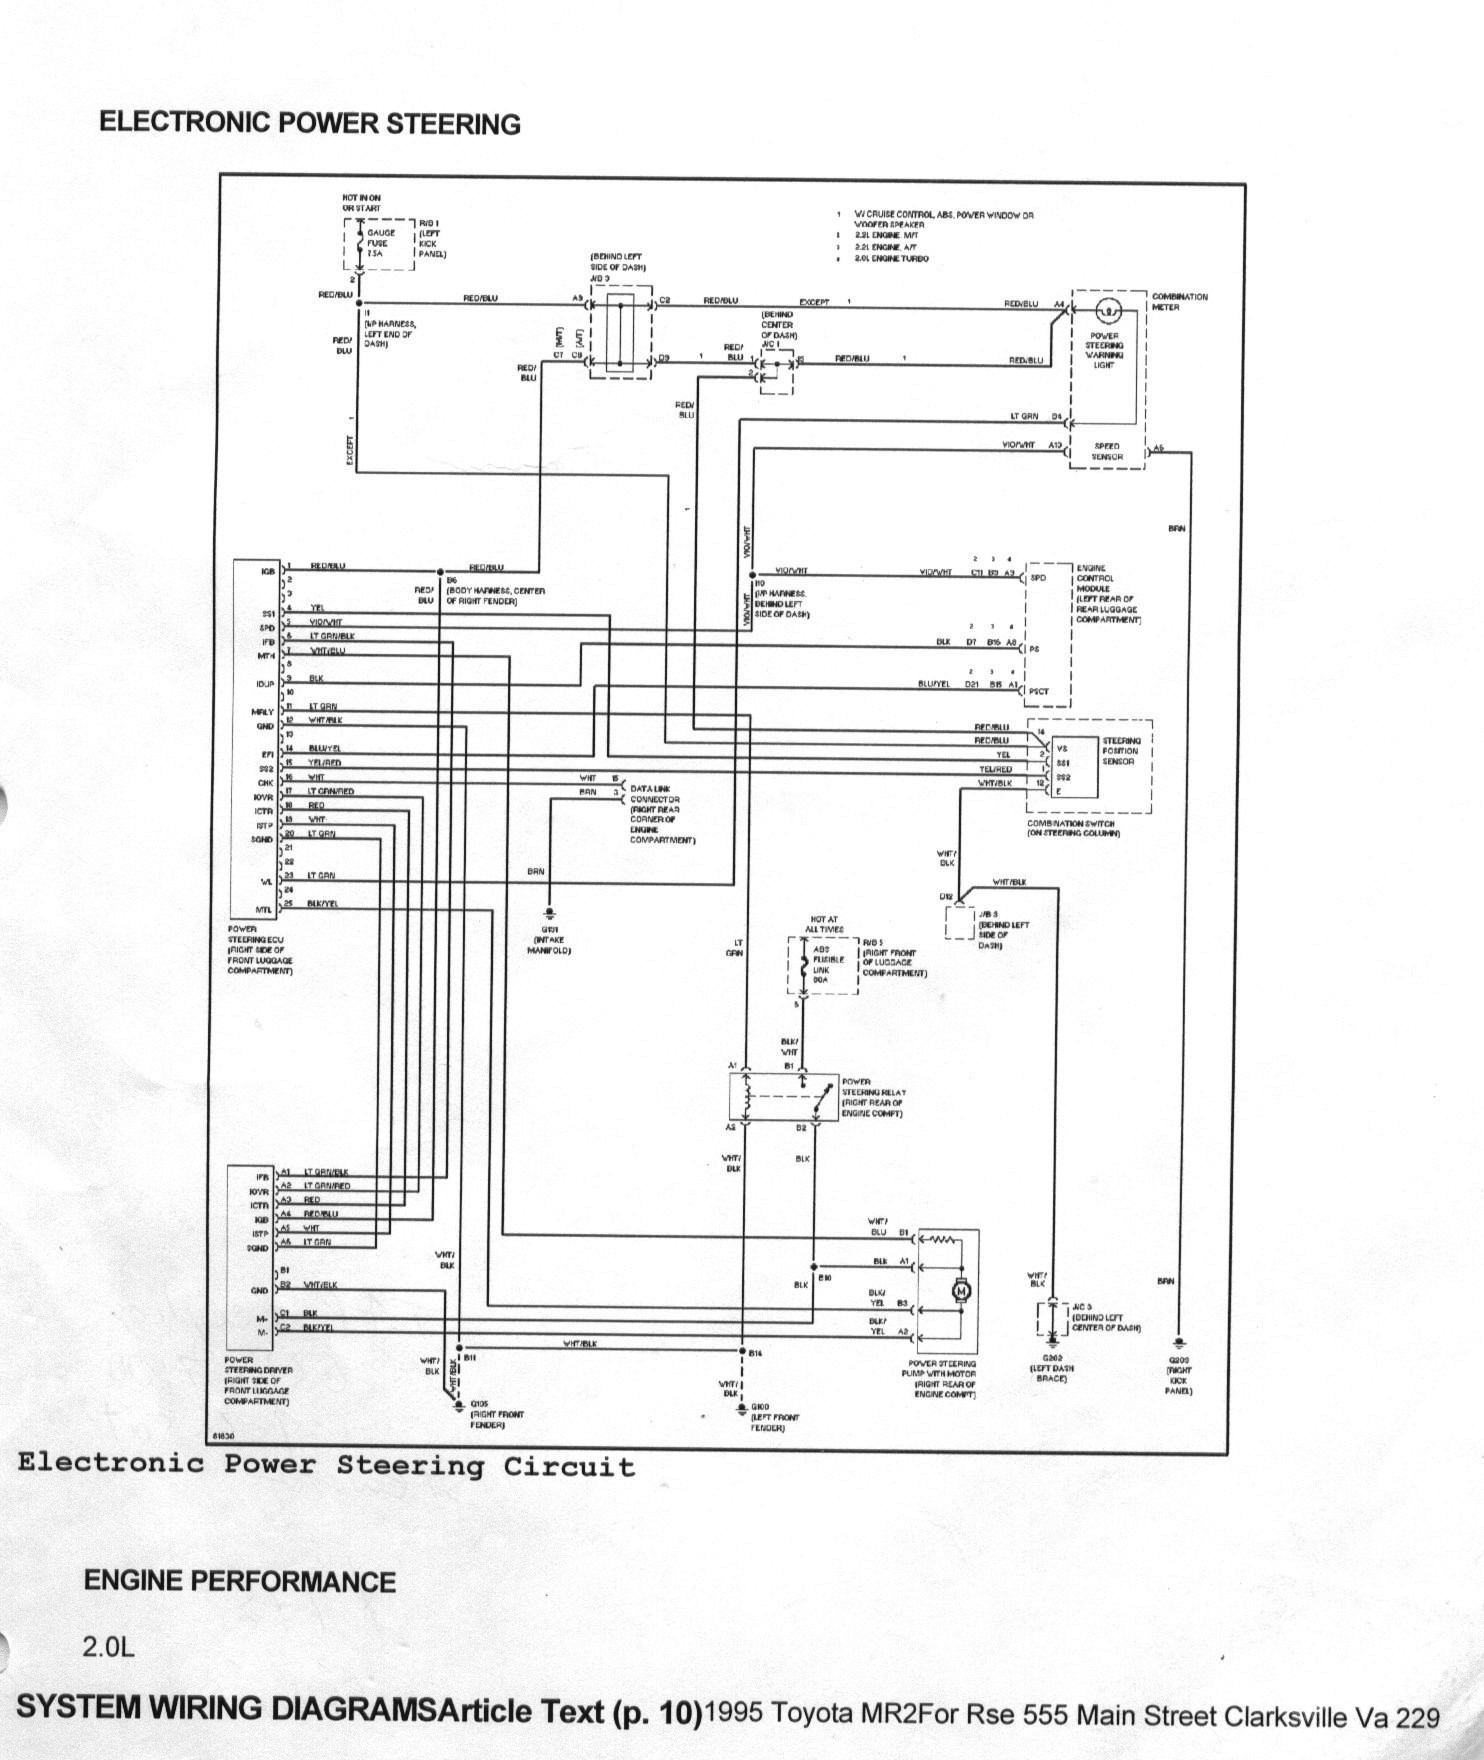 2006 Mazda 3 Electric Power Steering Pump Wiring Diagram